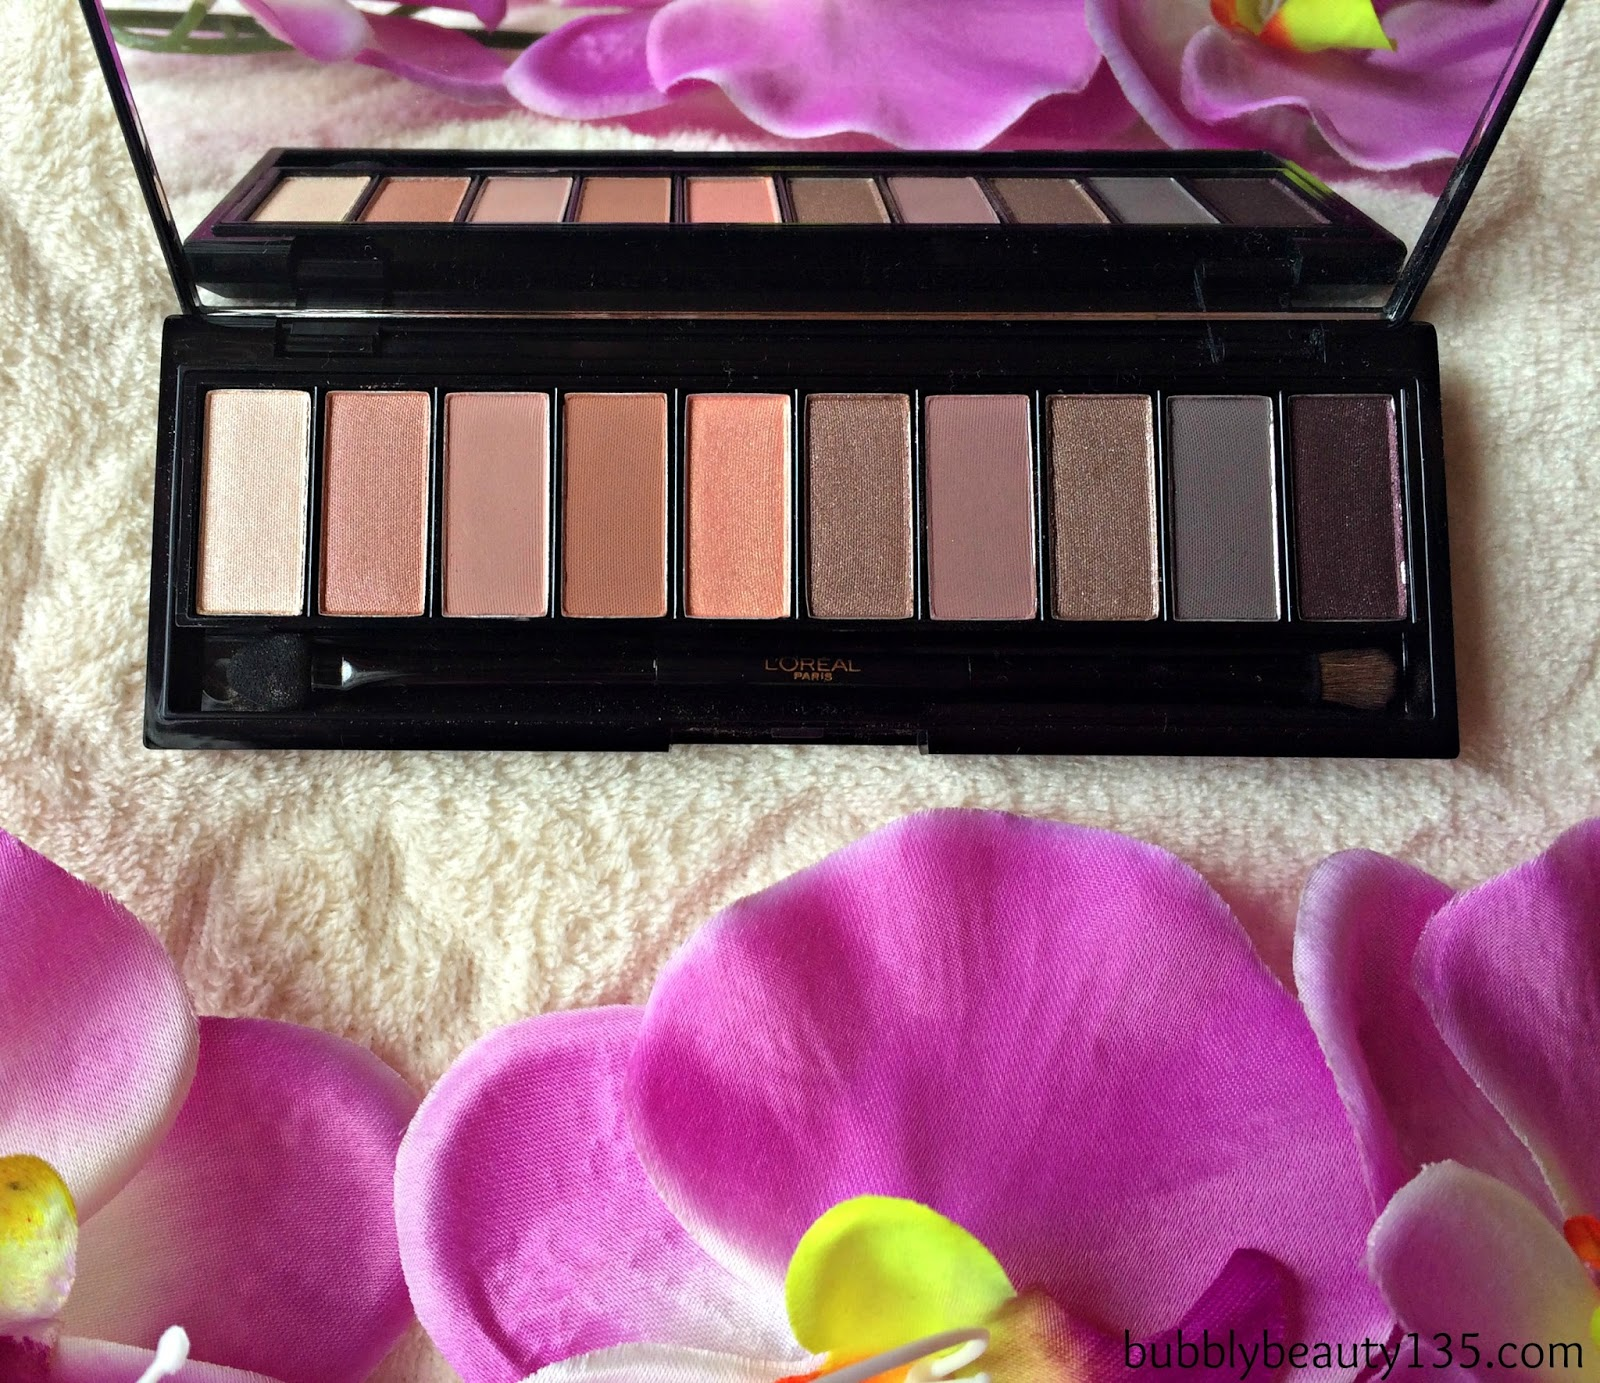 Review | La Palette Nude by L'oreal Paris | www.bubblybeauty135.com